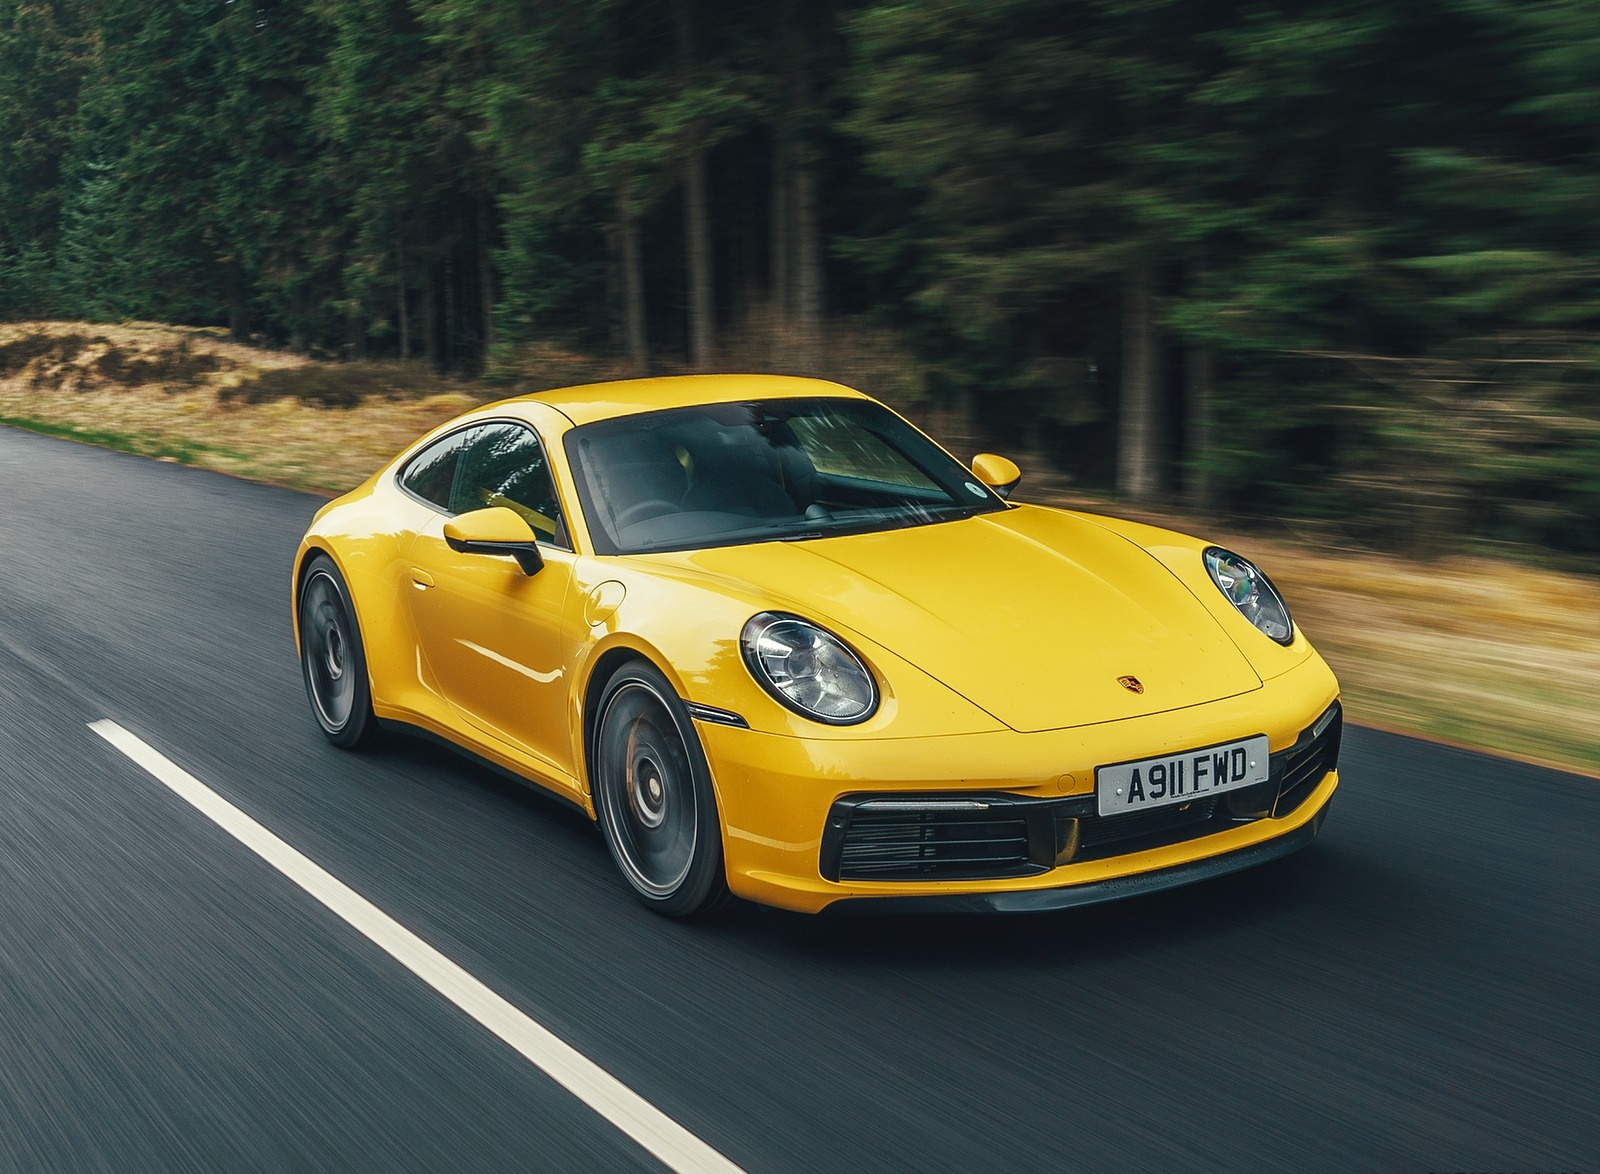 2019 Porsche 911 (992) Carrera 4S (UK-Spec) Front Three-Quarter Wallpaper (3)